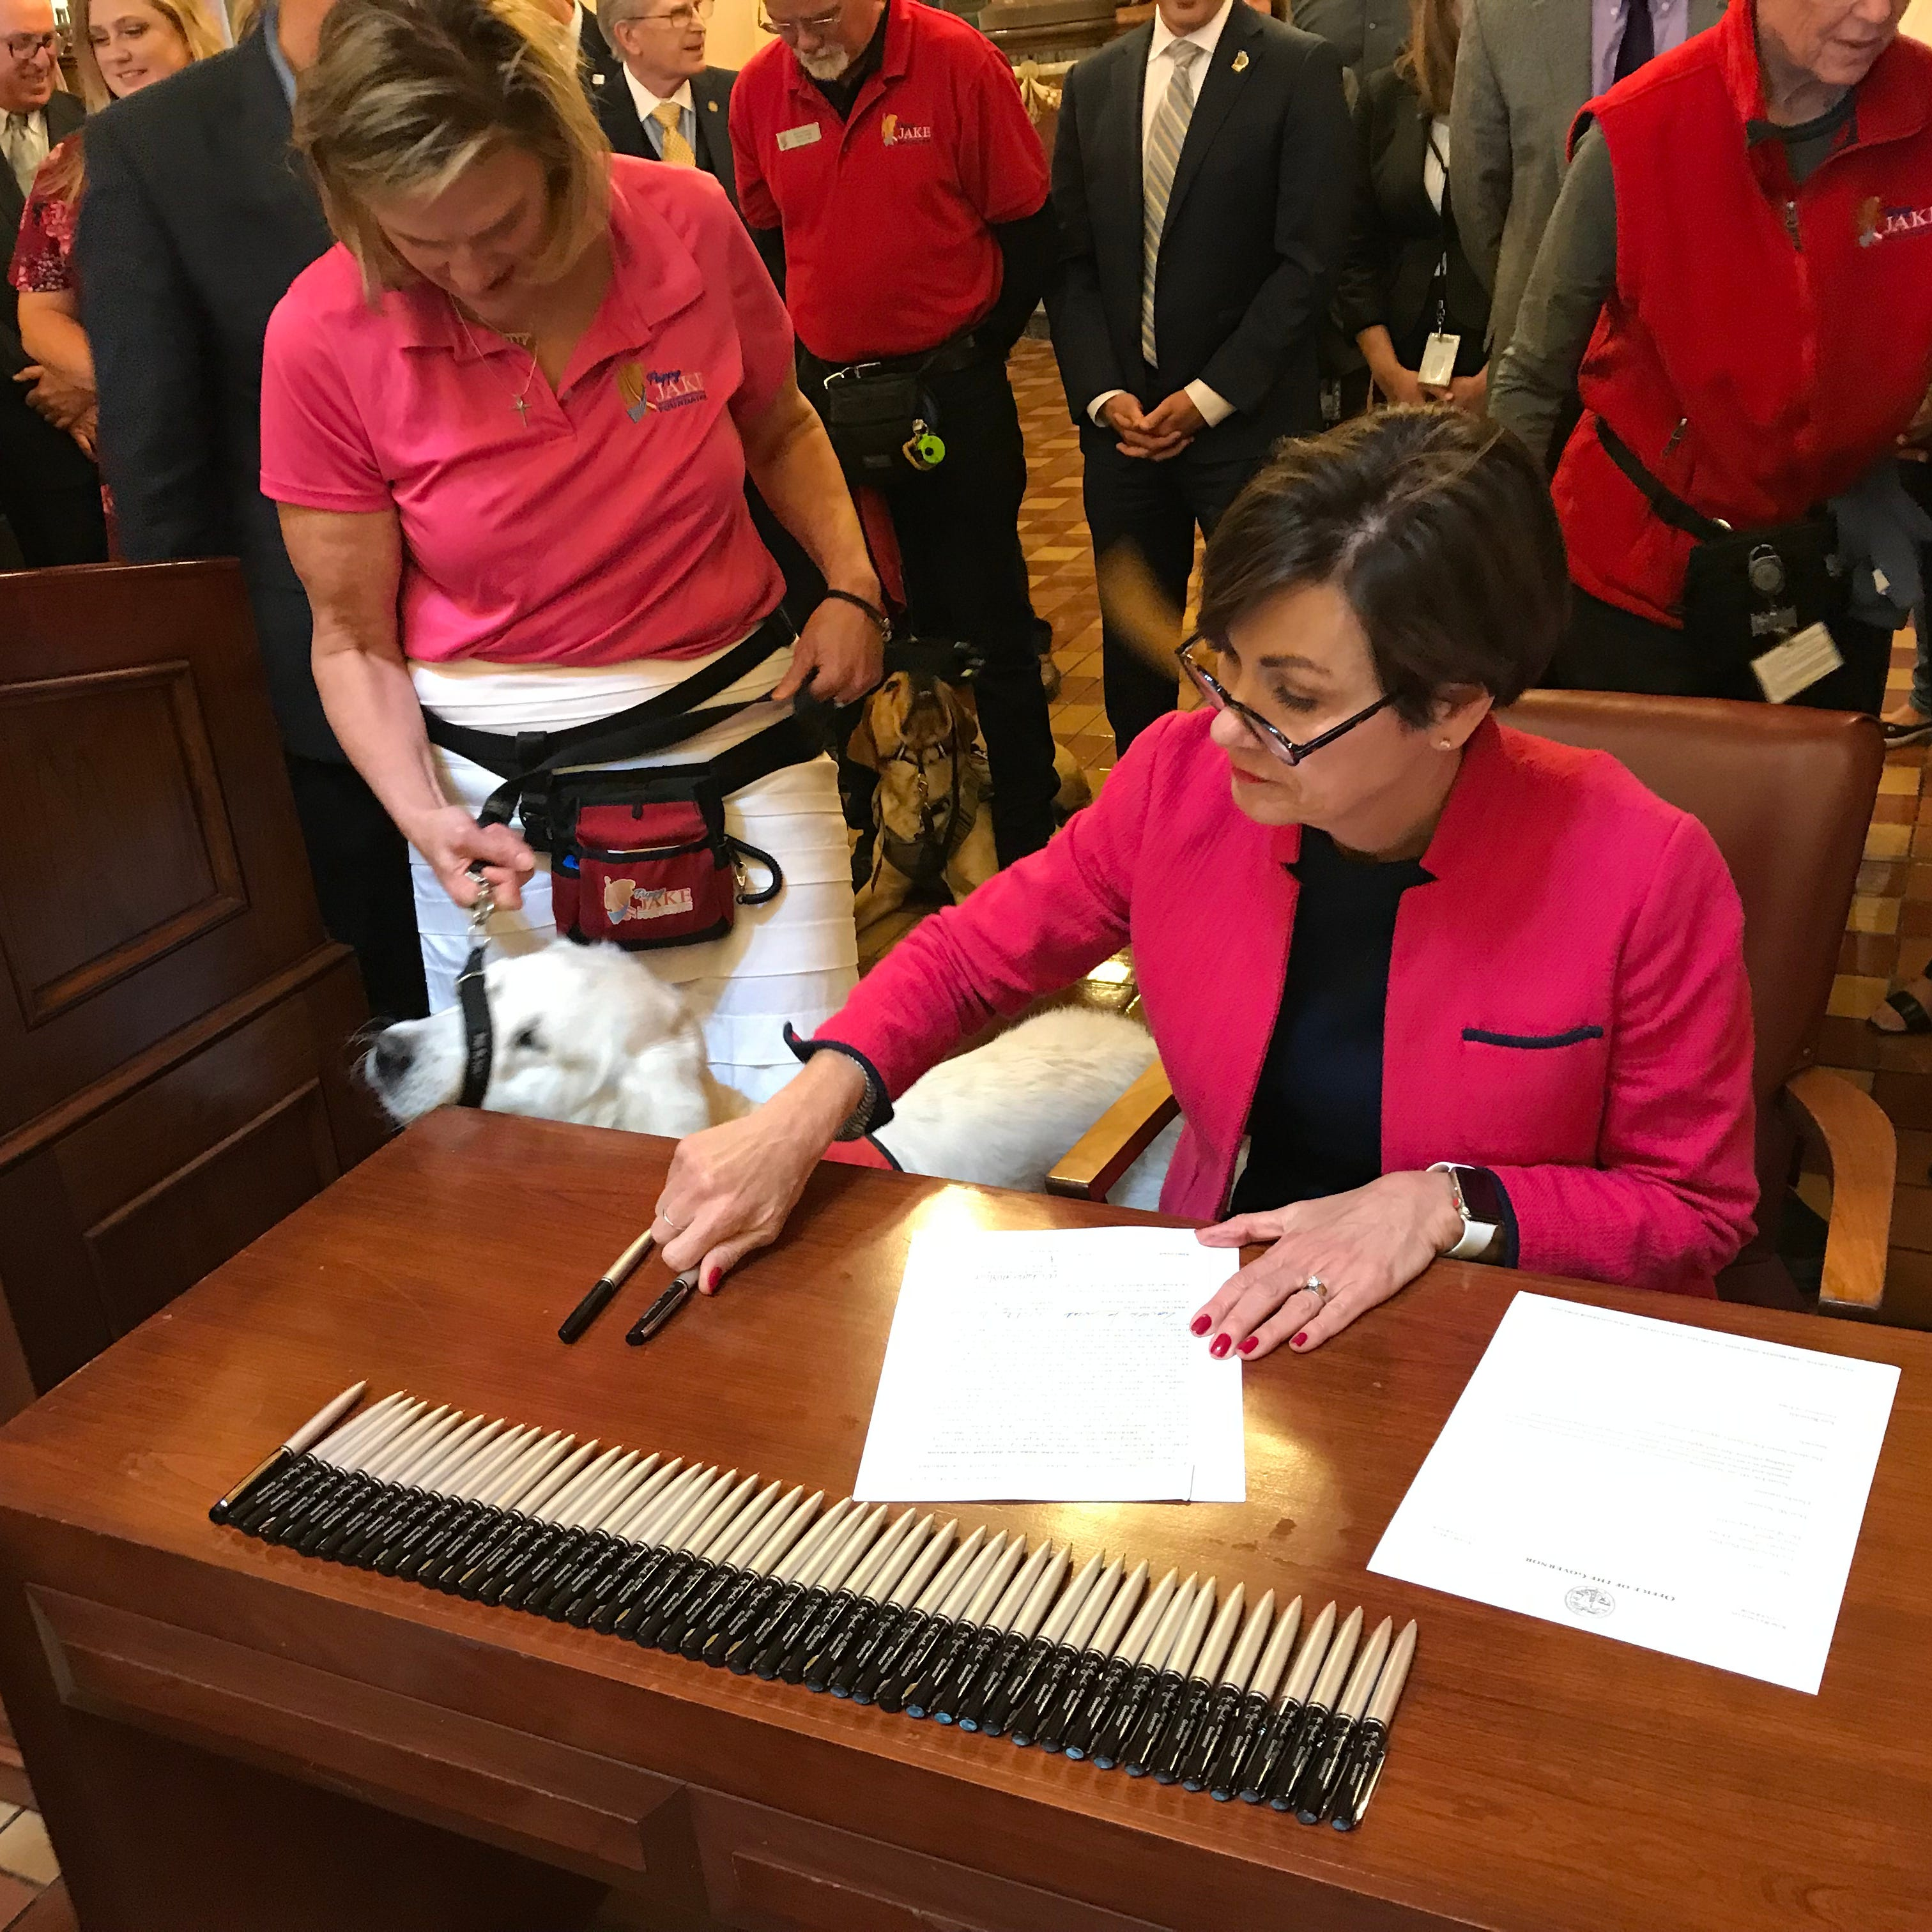 With service dogs watching, Kim Reynolds signs bill on service animals